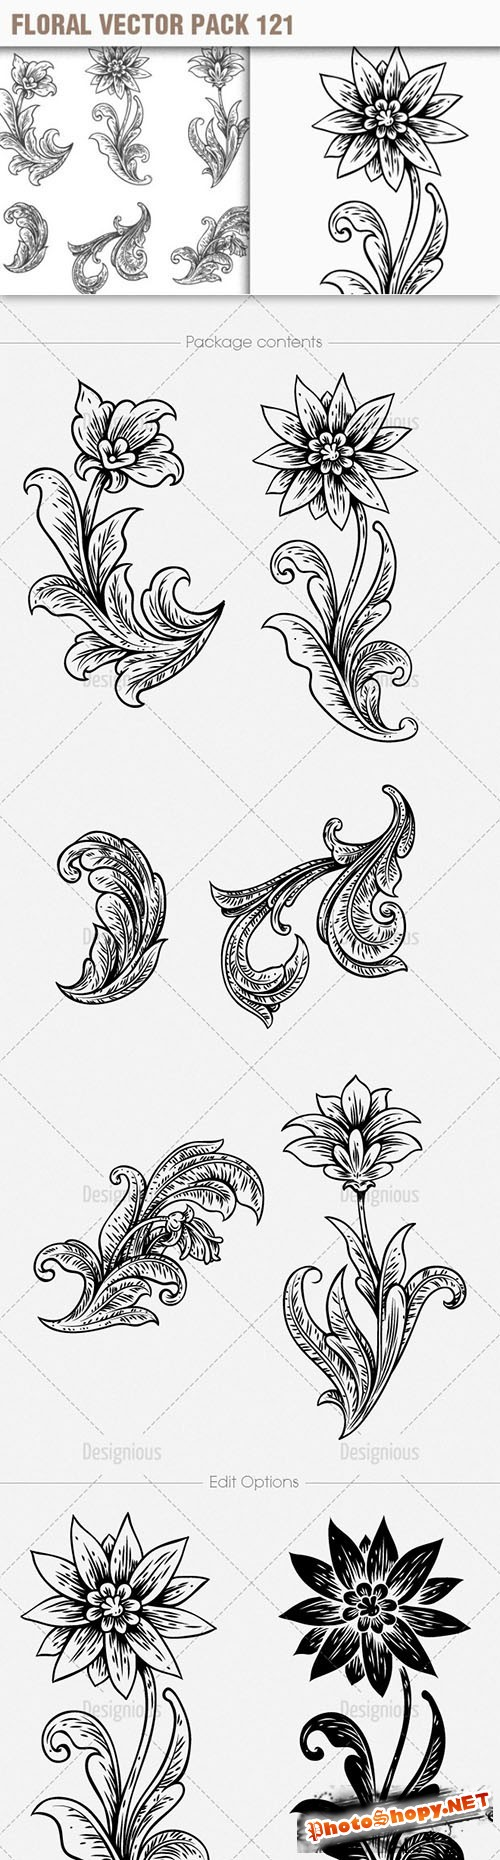 Floral Vector Pack 121